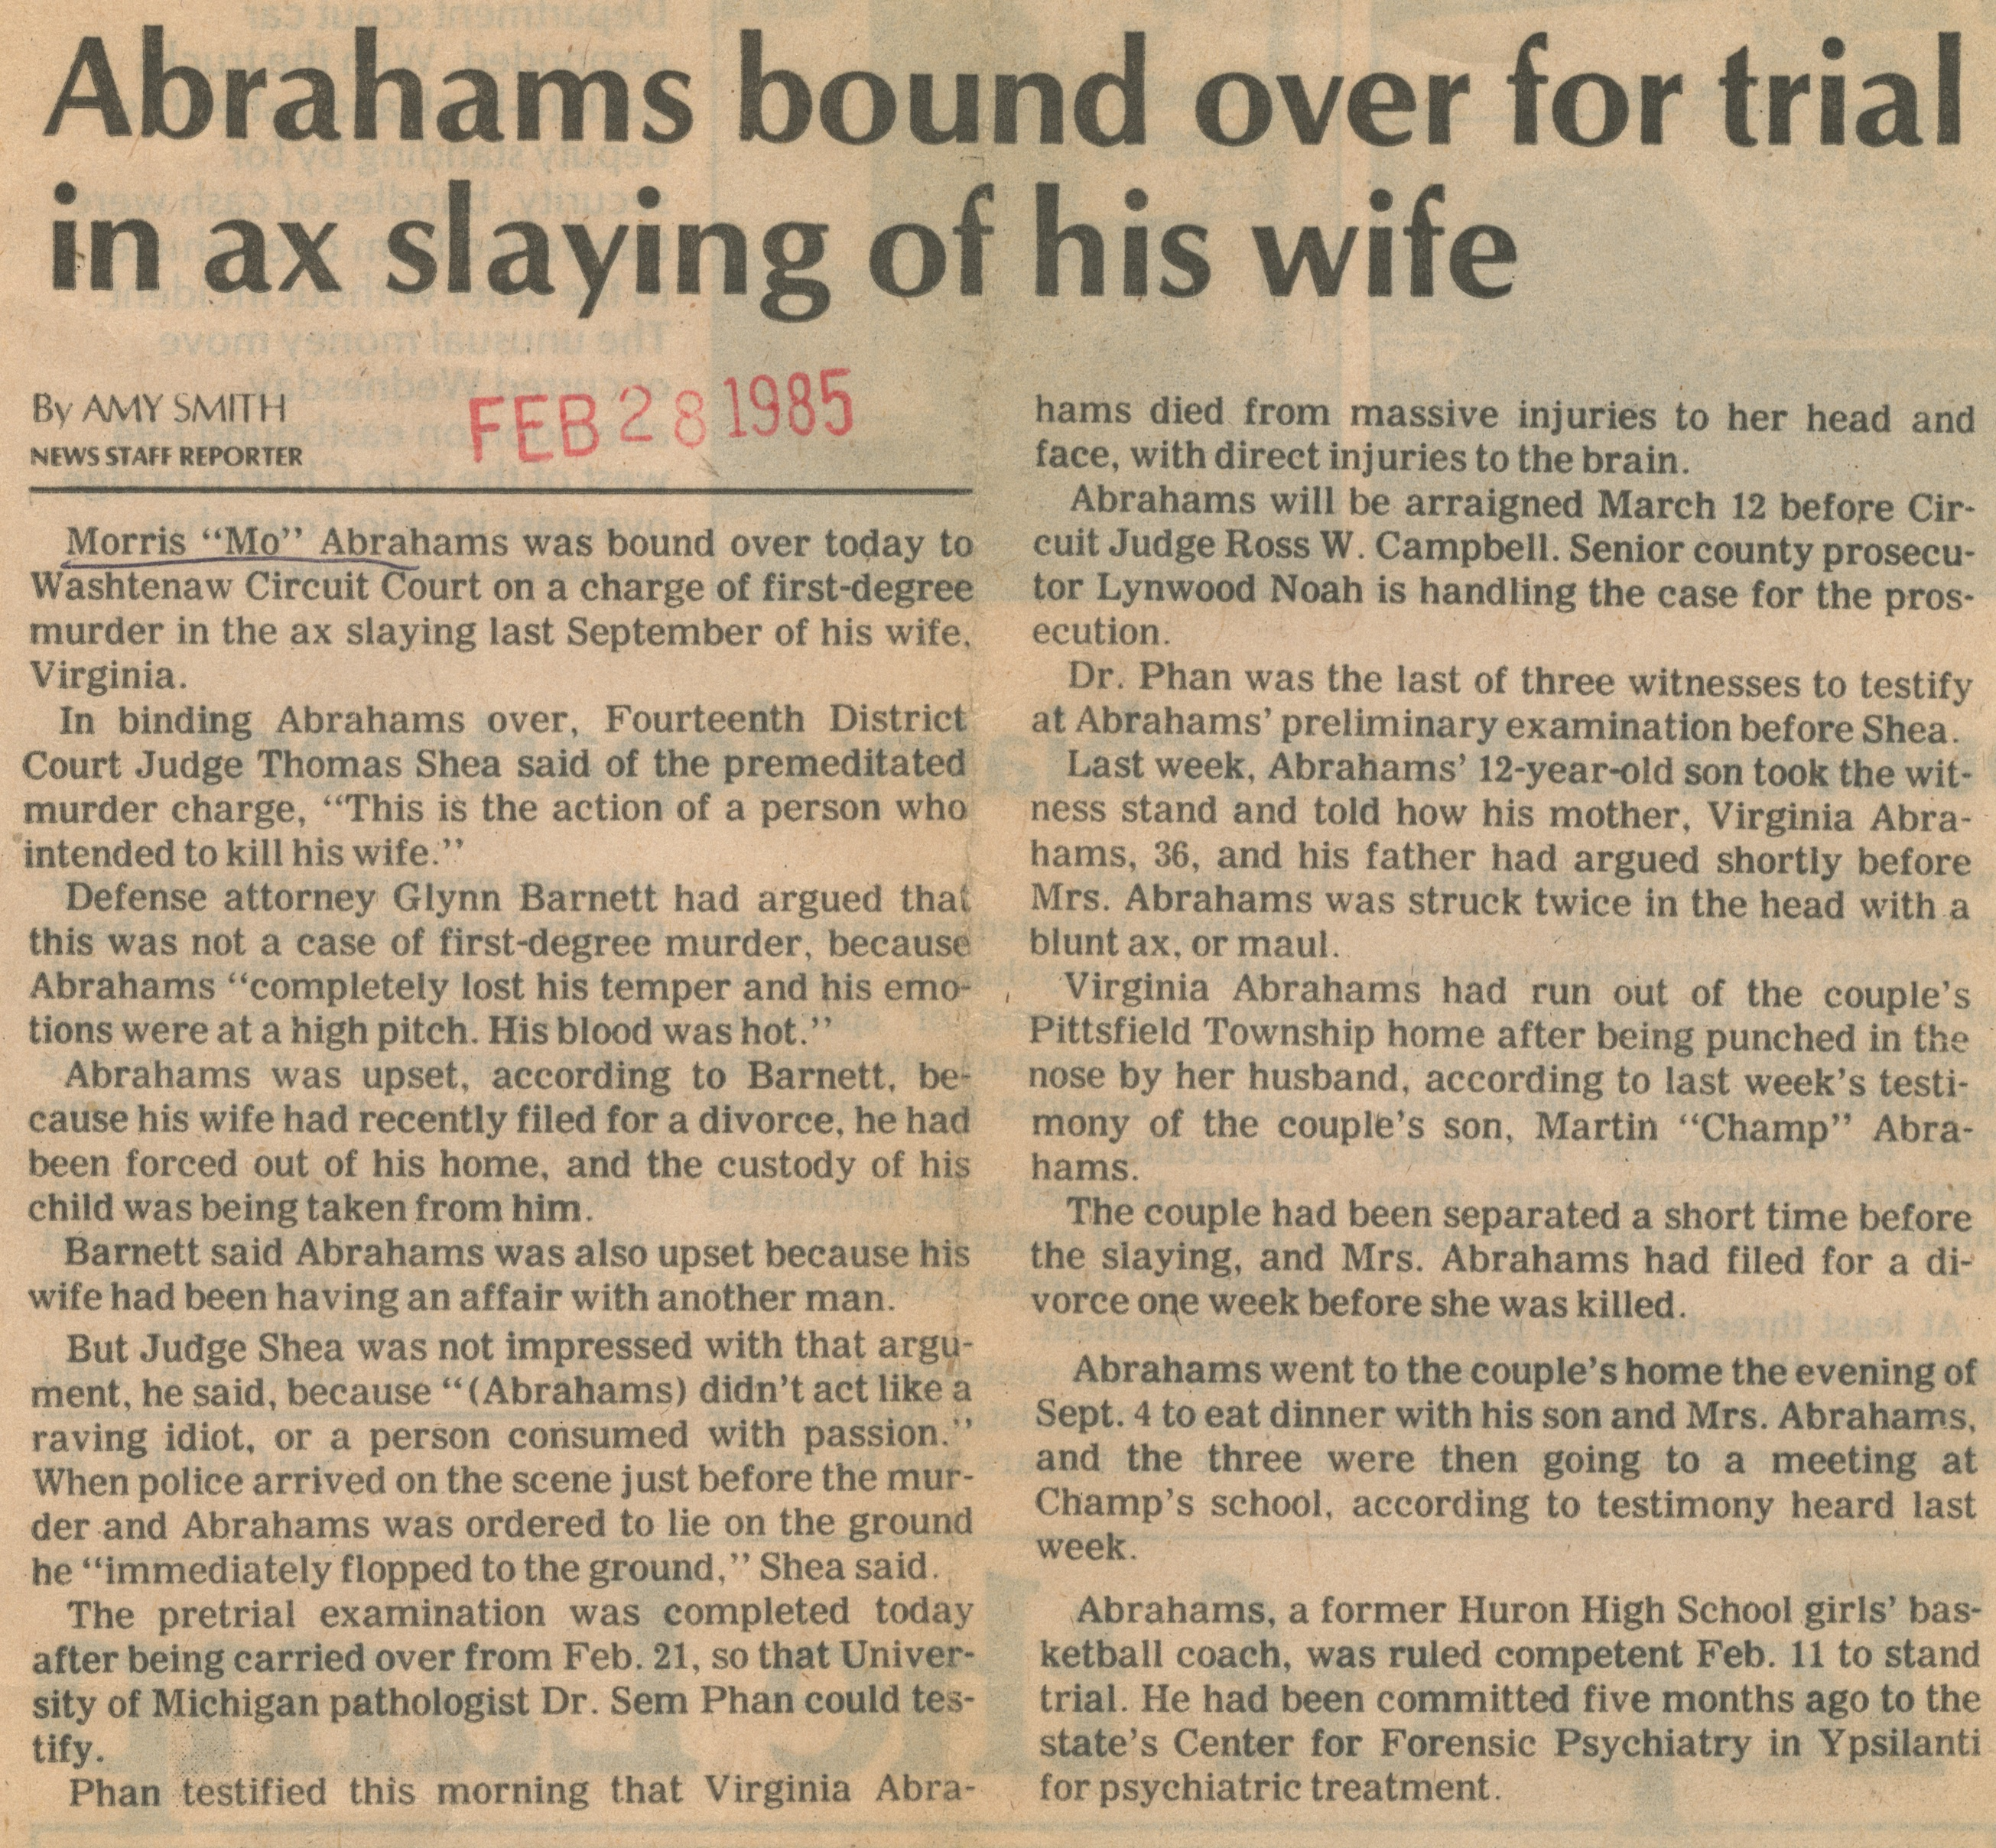 Abrahams Bound Over For Trial In Ax Slaying Of His Wife image